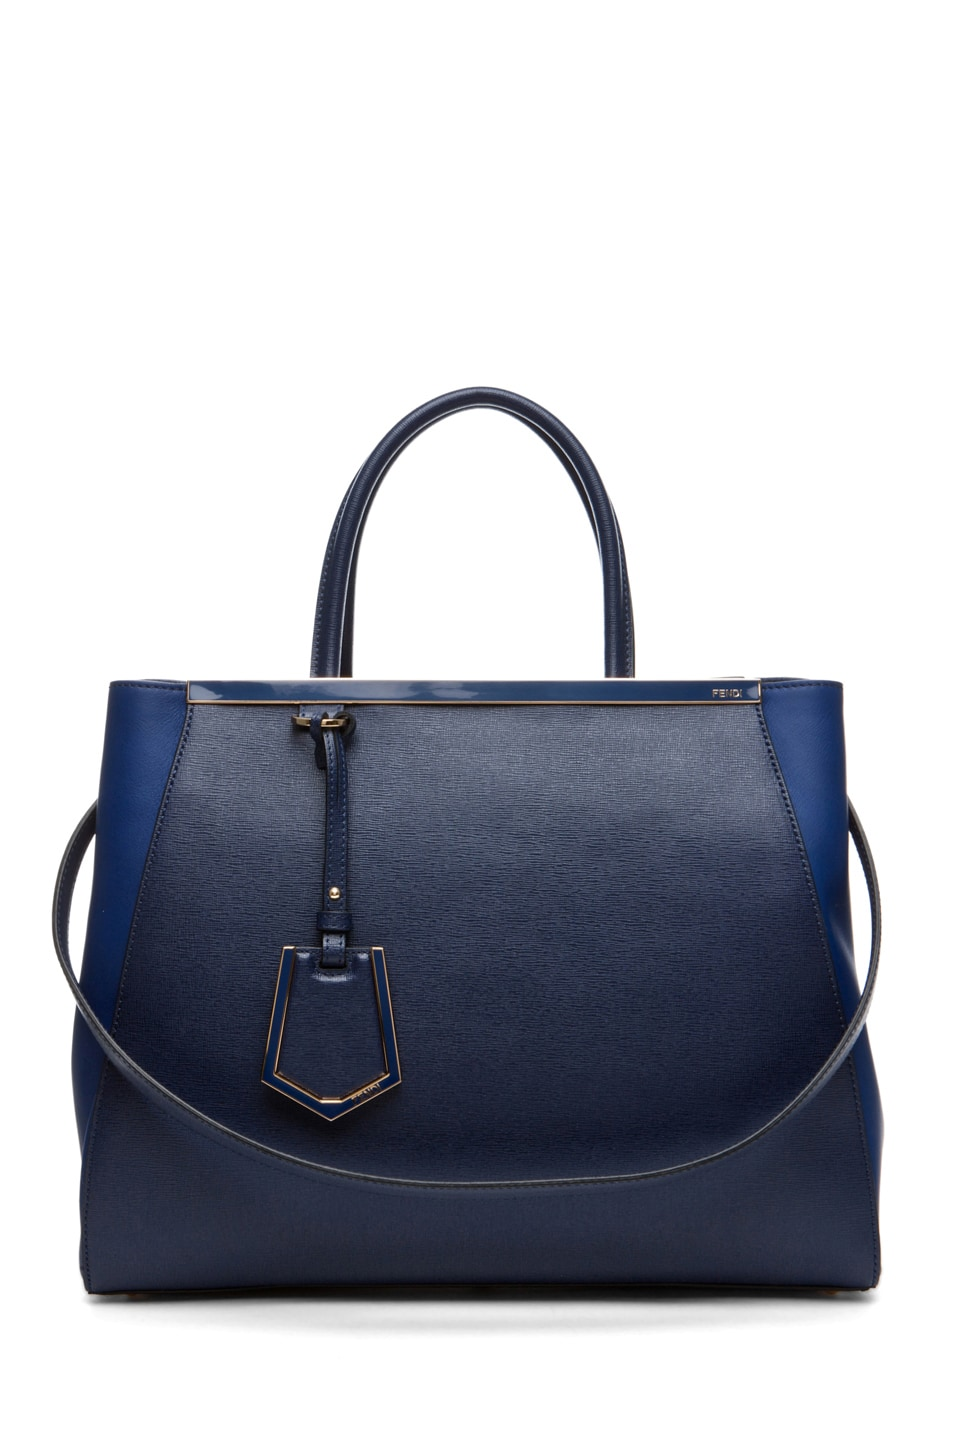 Image 1 of Fendi Handbag in Blue